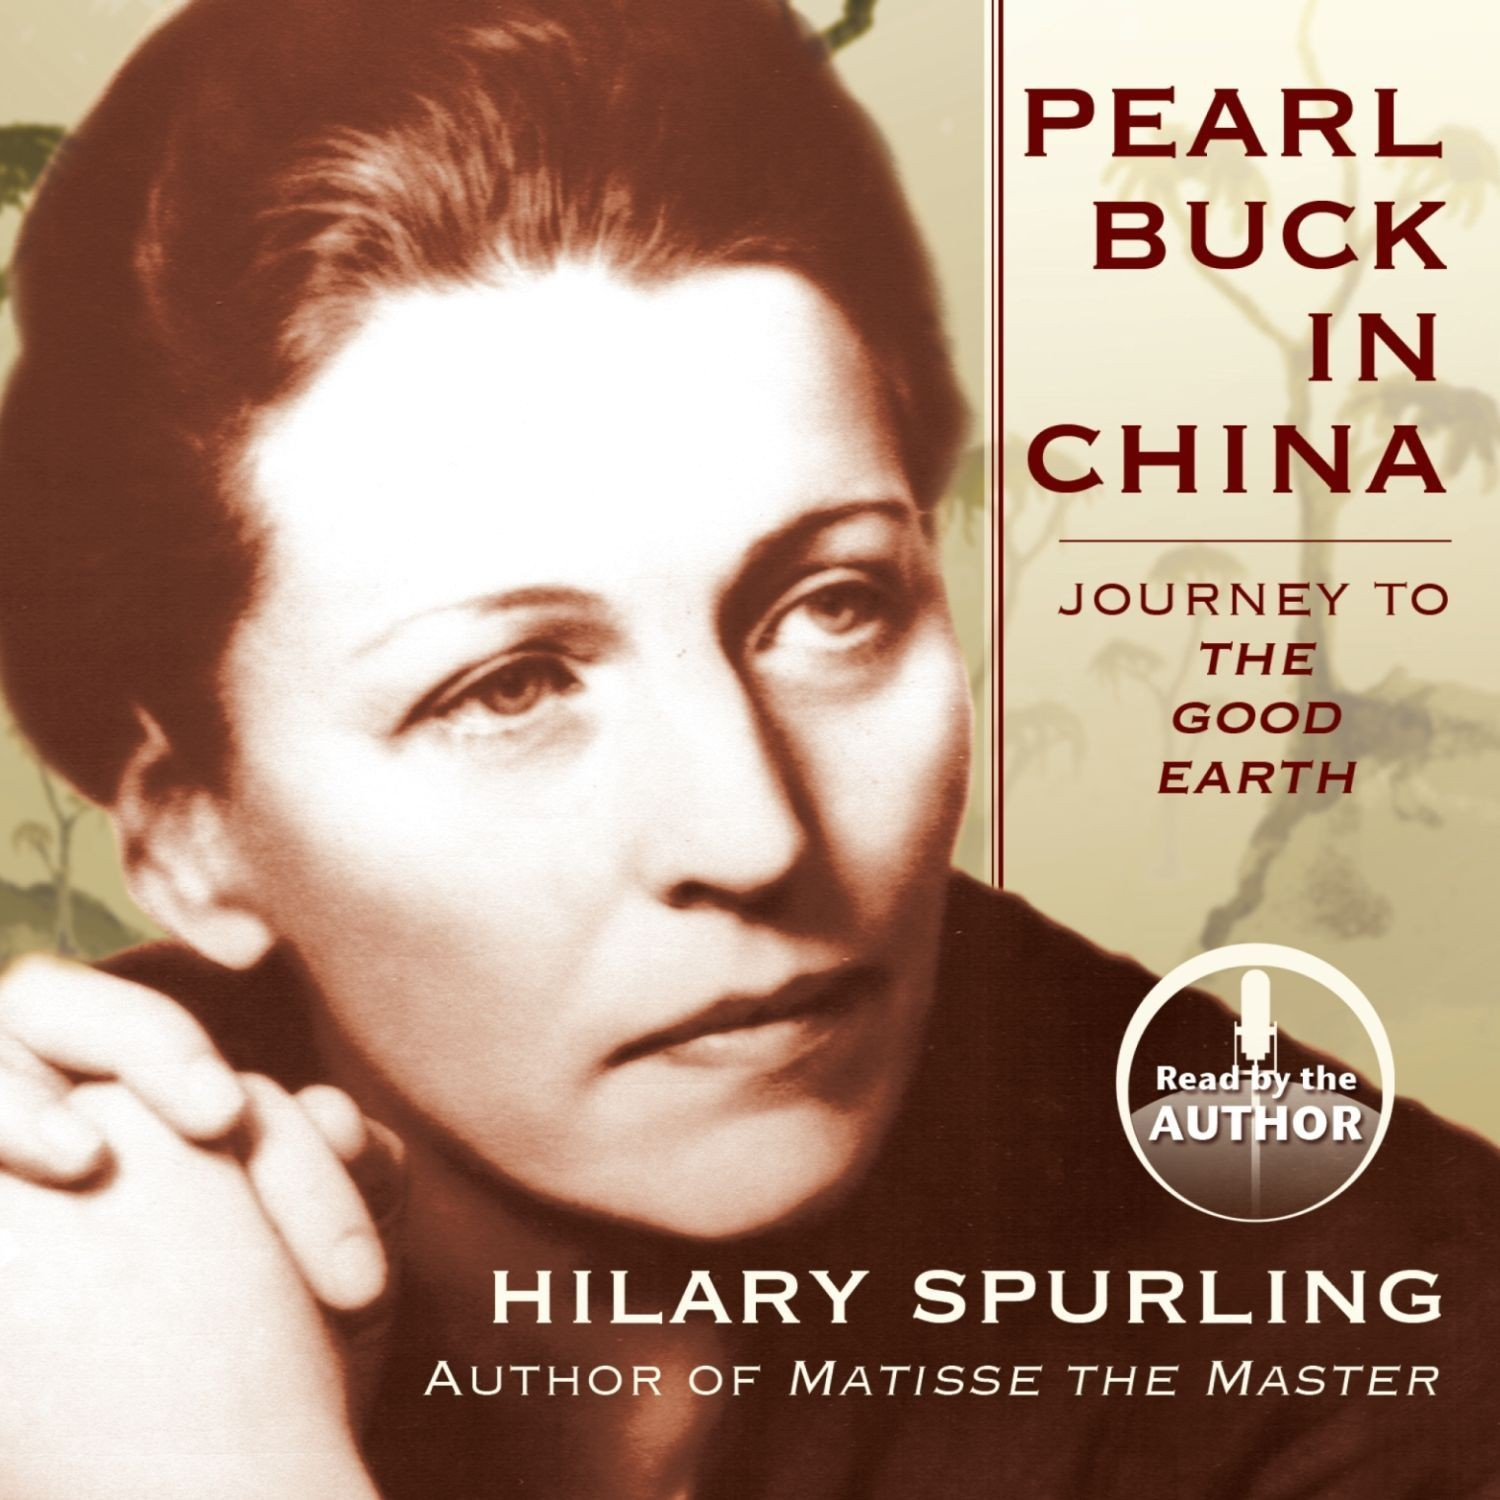 Printable Pearl Buck in China: Journey to The Good Earth  Audiobook Cover Art